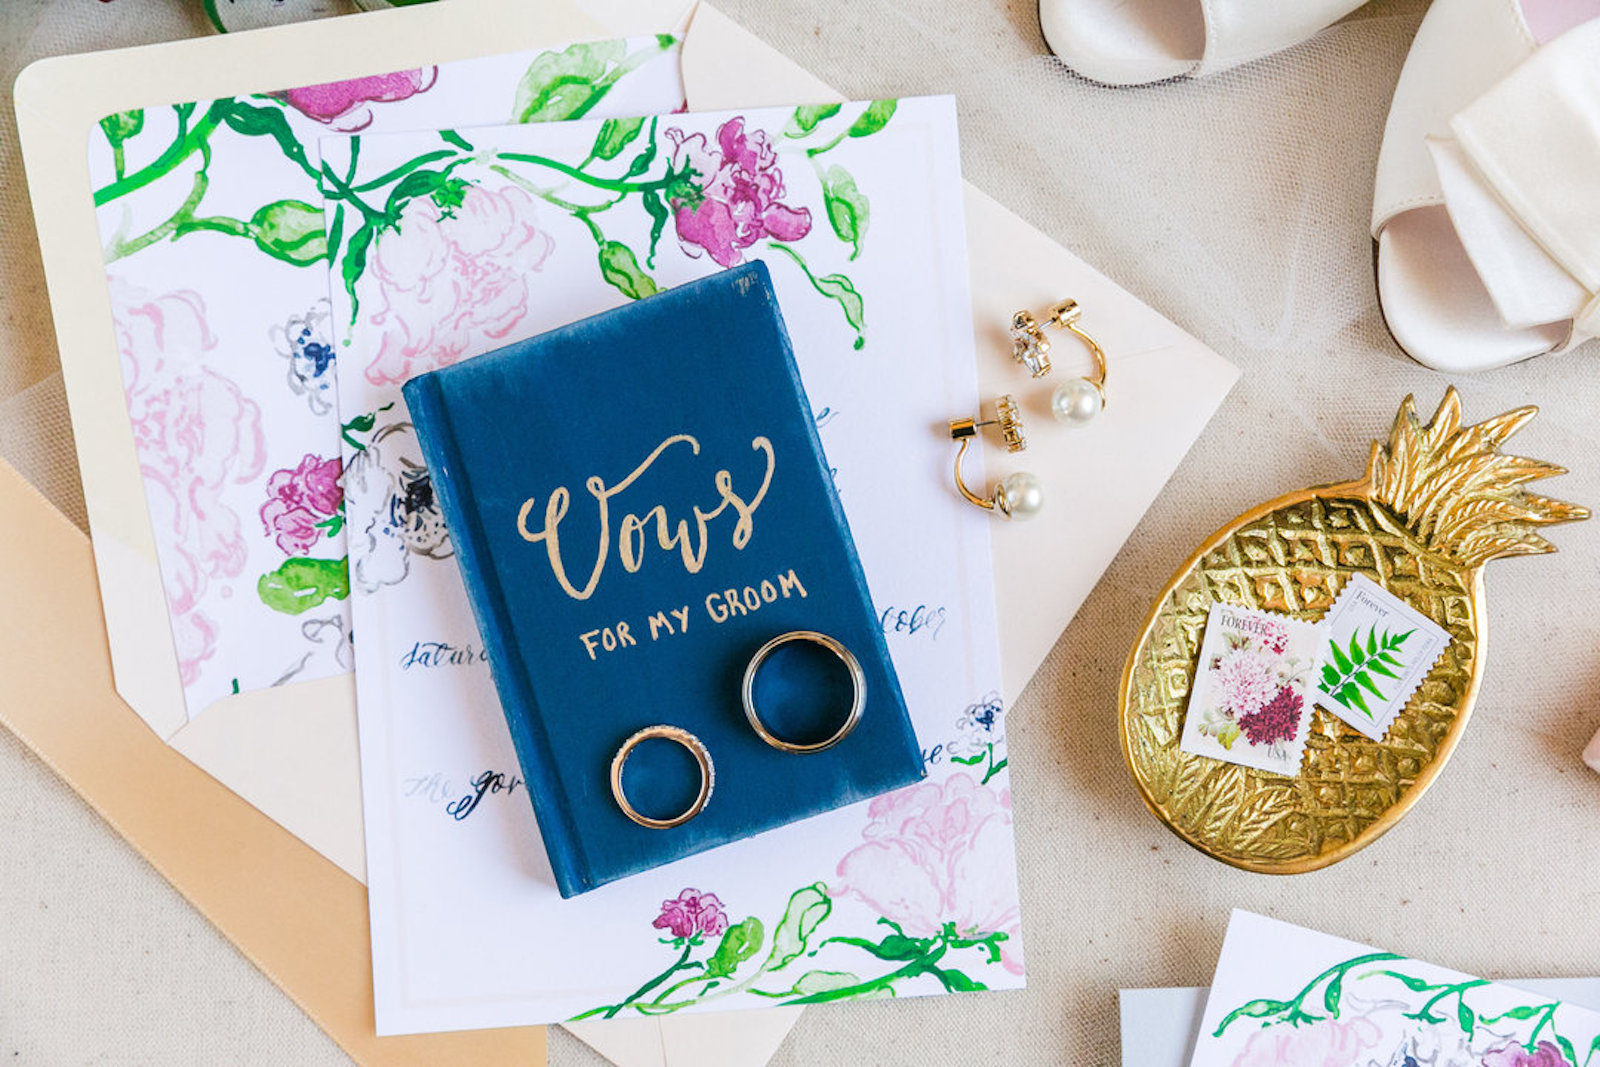 a navy book of wedding vows with gold script, with two wedding rings on top lying on pink floral invitation